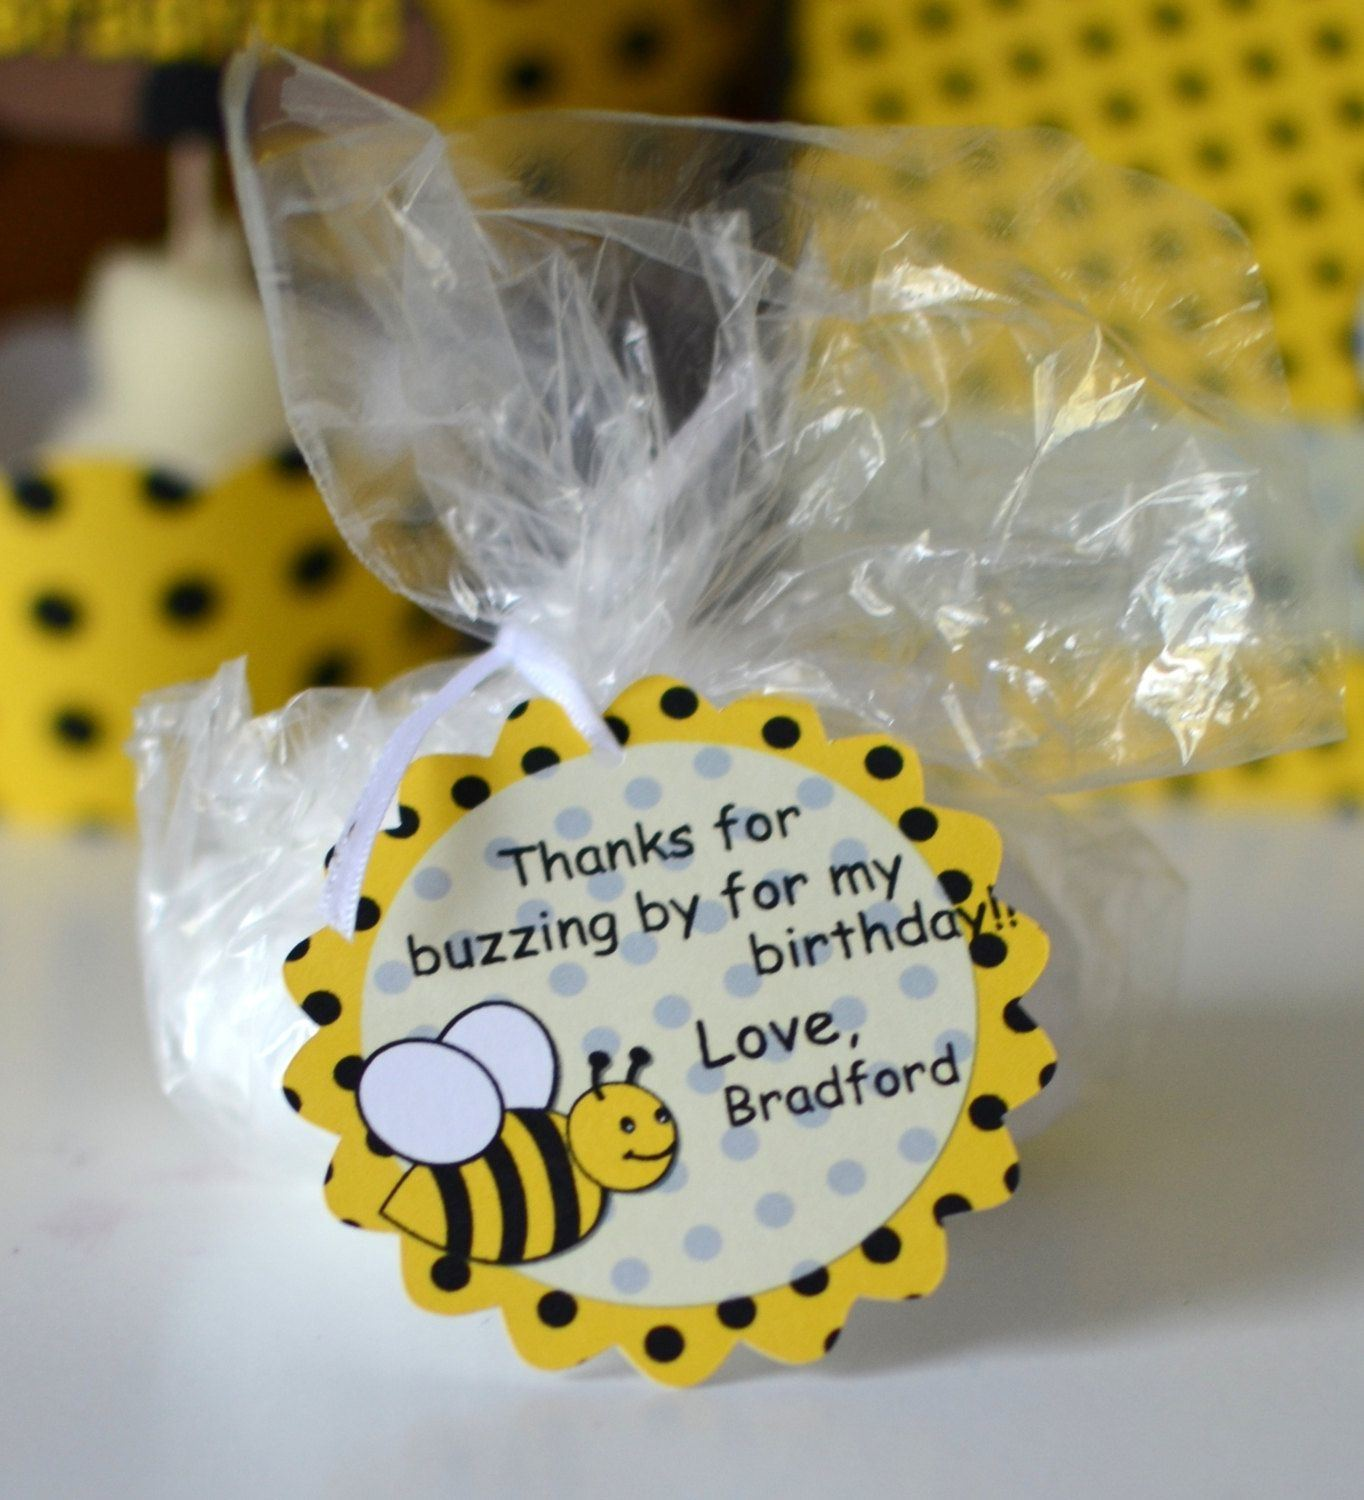 Bumble+BEE+Birthday+Party+Favors+Bumble+Bee+Baby+by+bcpaperdesigns,+$9